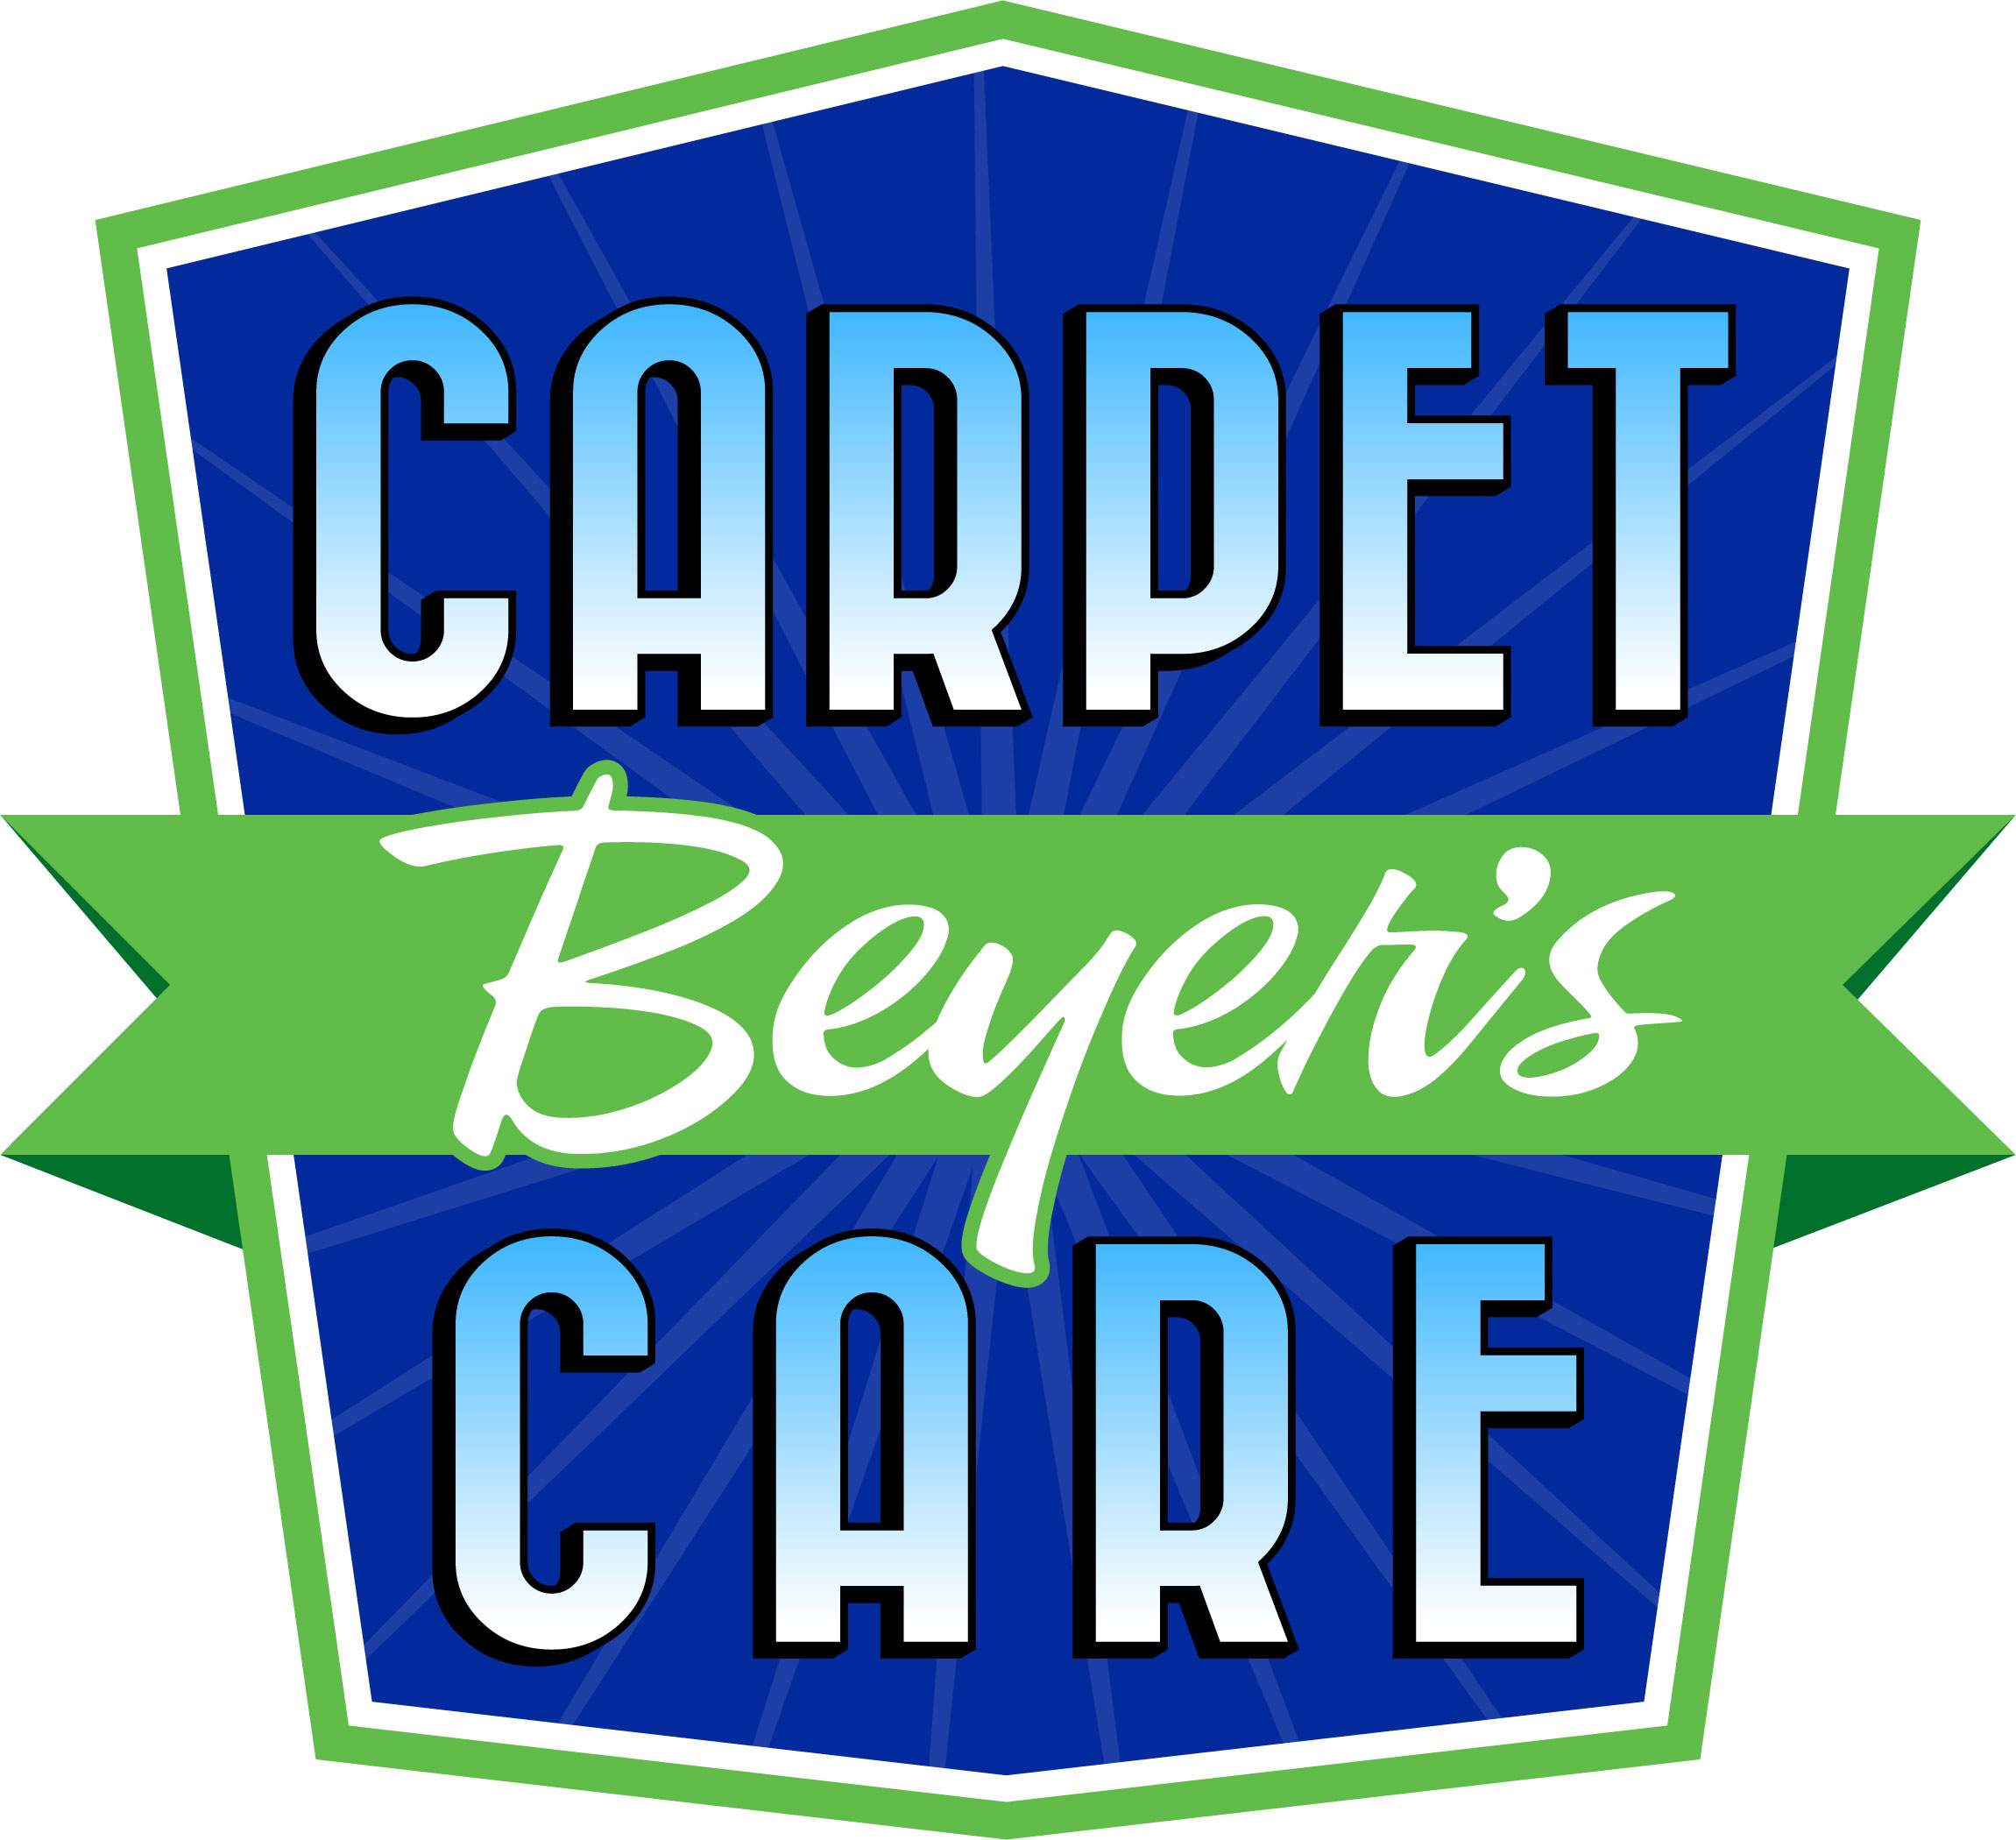 Beyer's Carpet Care